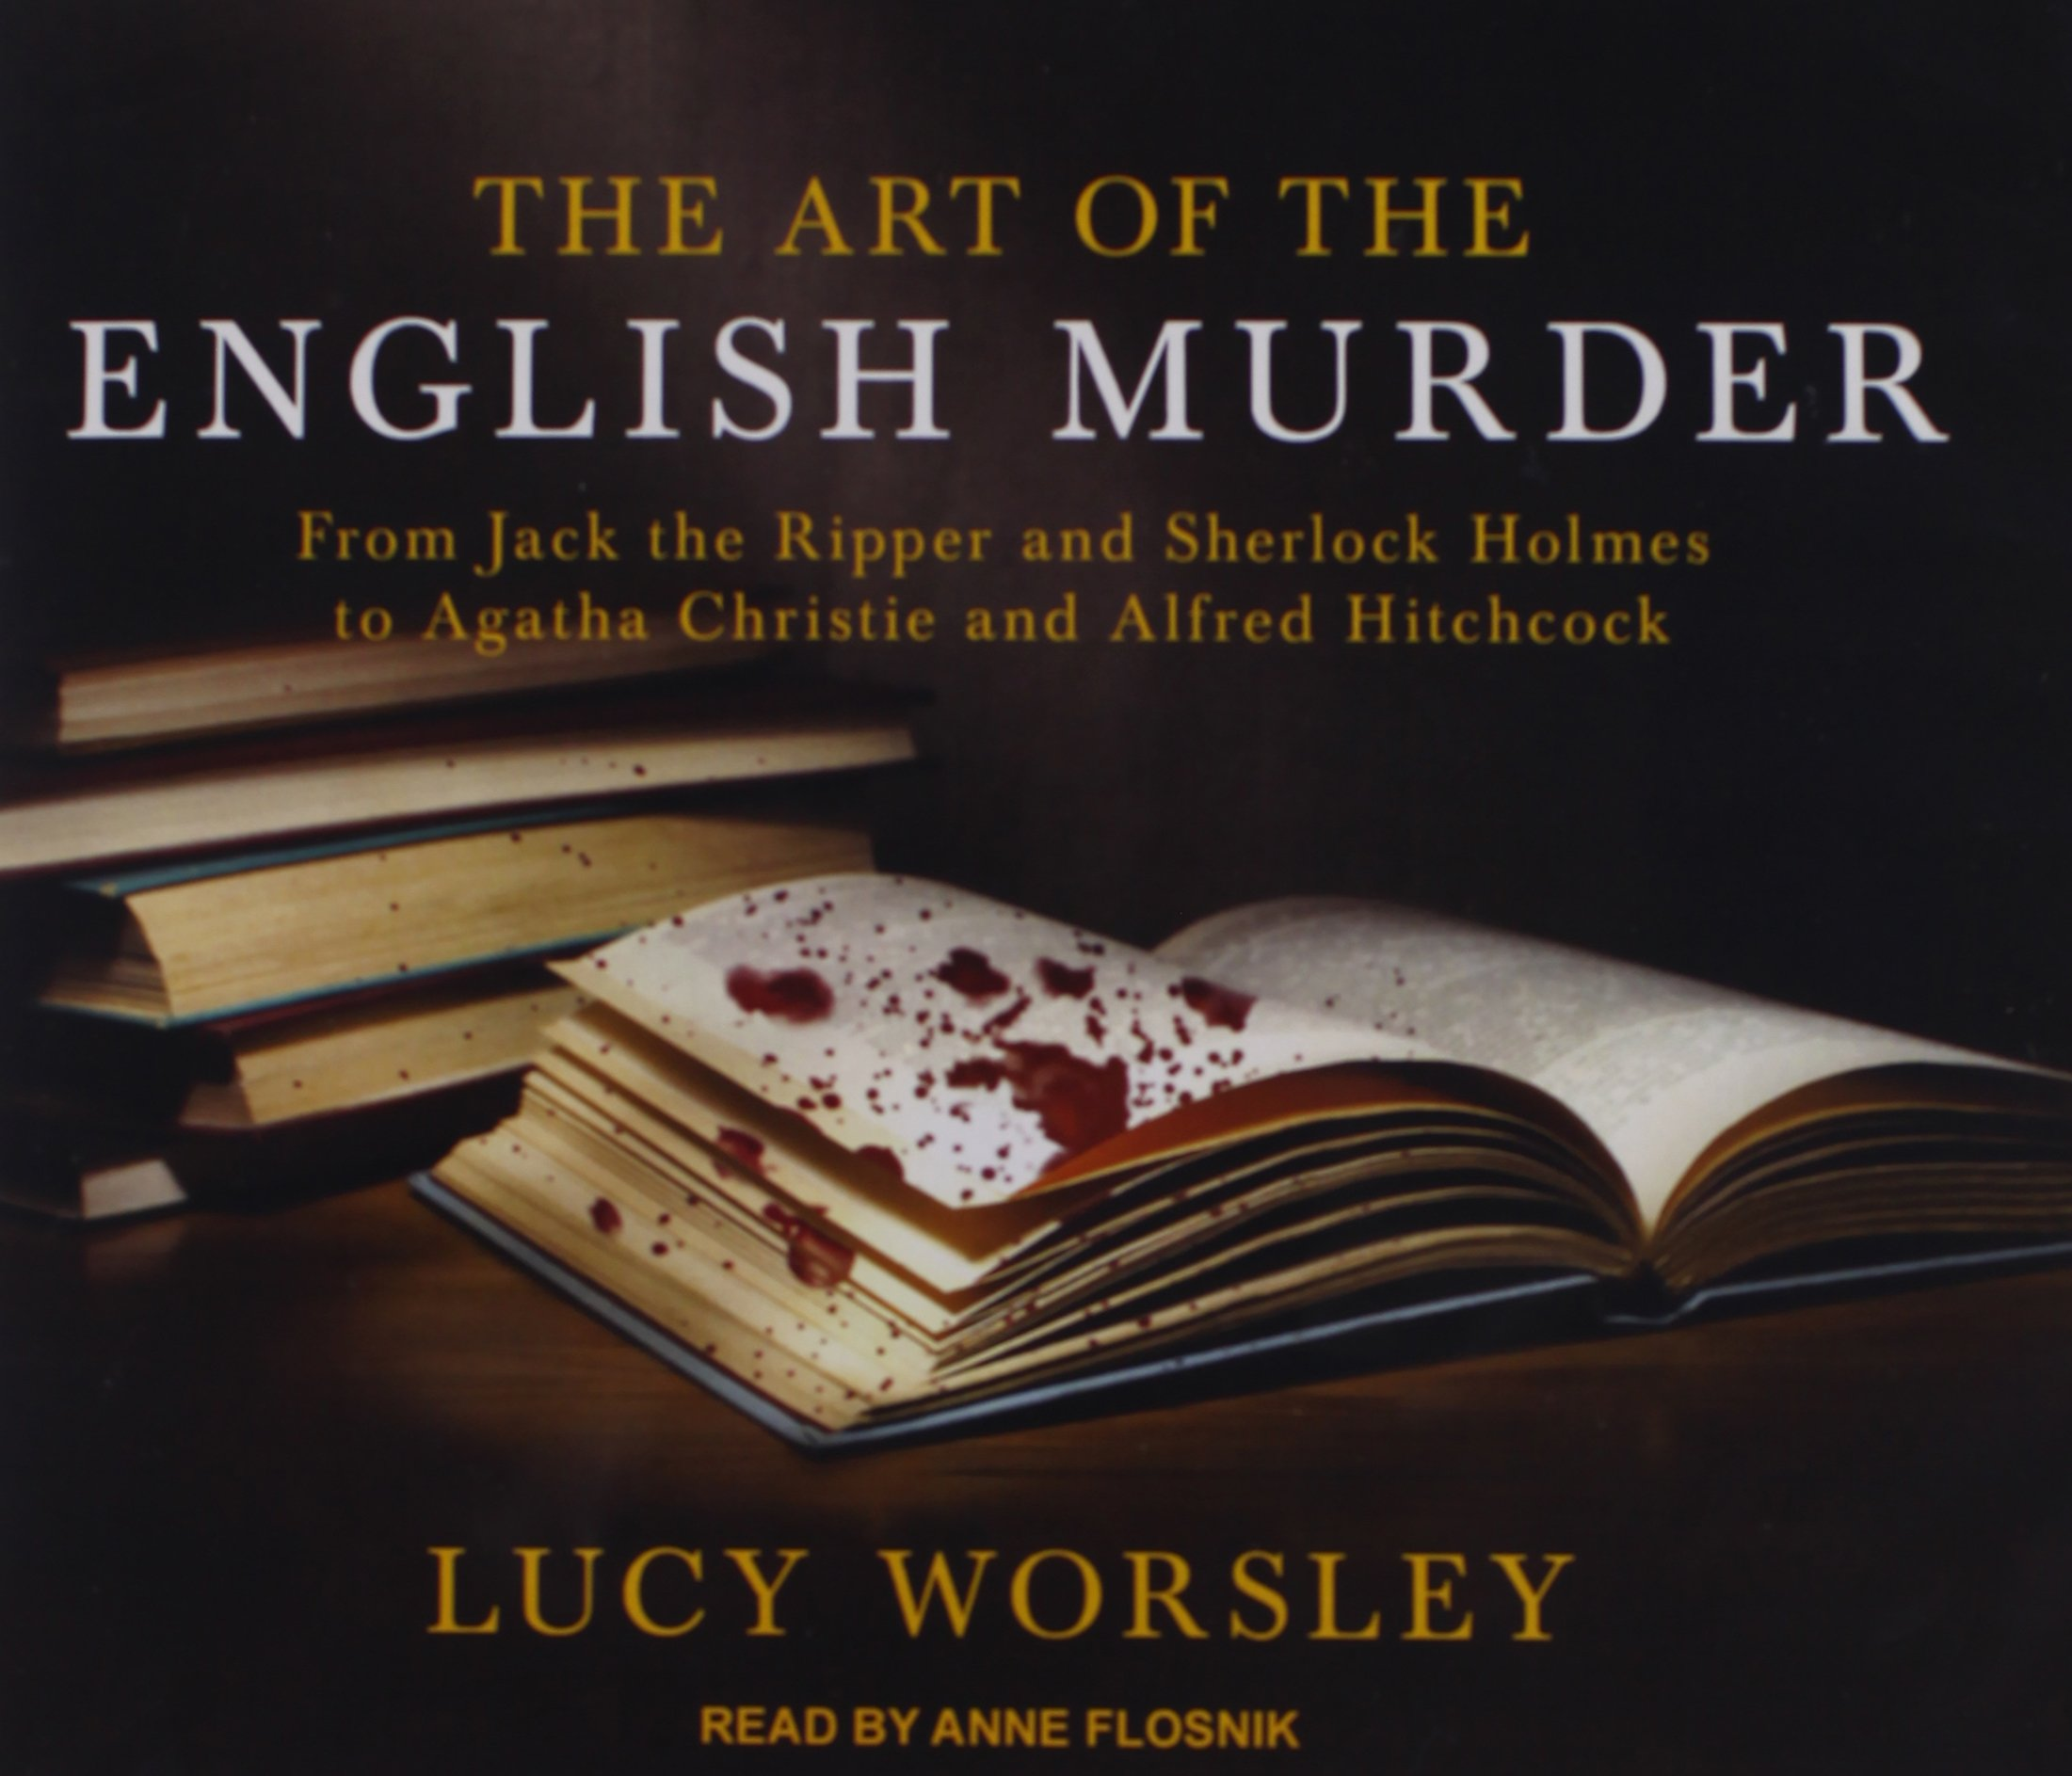 The Art of the English Murder: From Jack the Ripper and Sherlock Holmes to Agatha Christie and Alfred Hitchcock by Tantor Audio